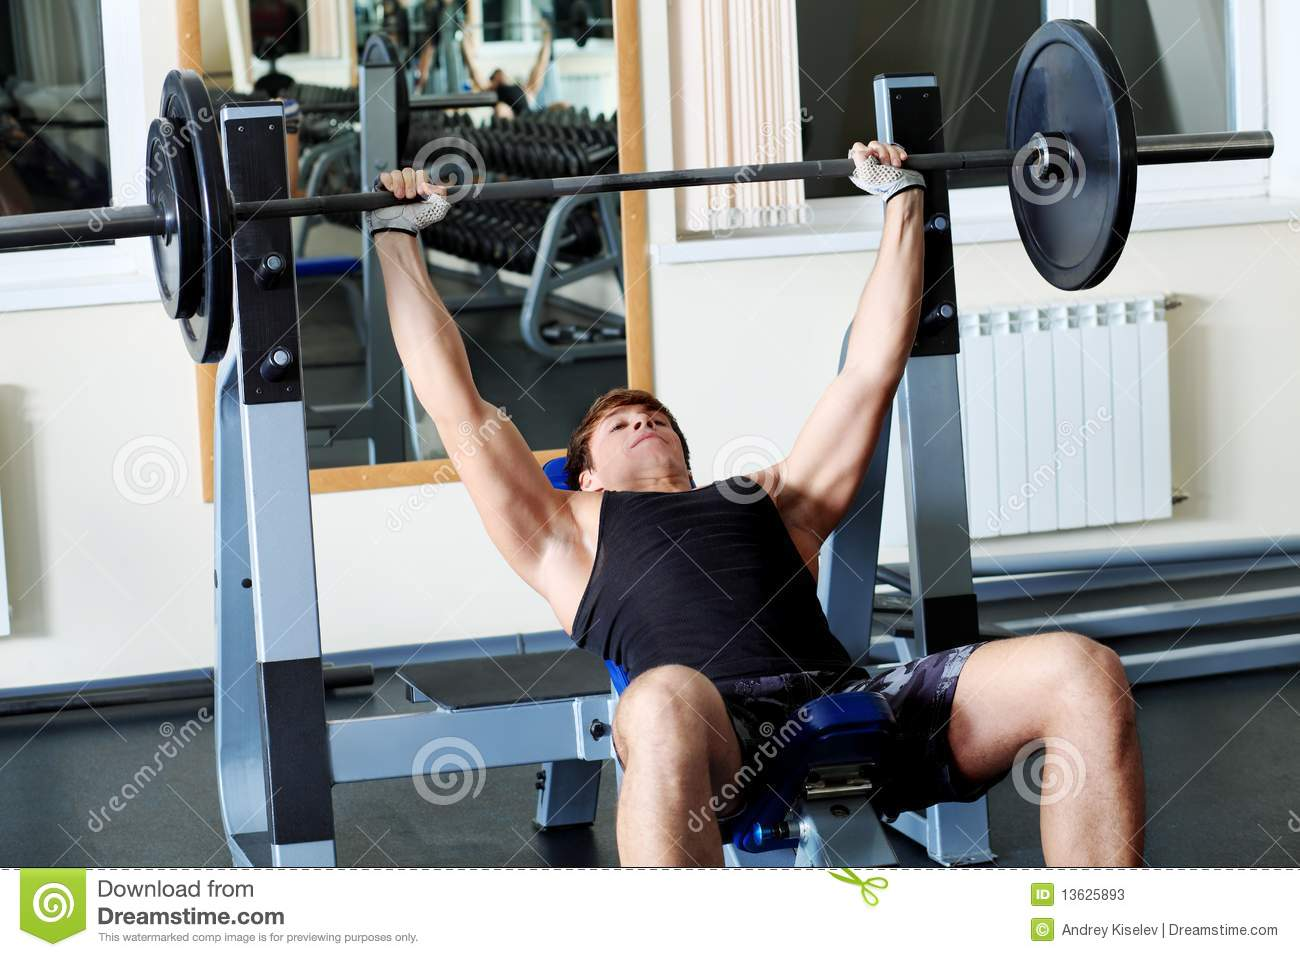 Workout stock image. Image of male, anatomy, equipment - 13625893